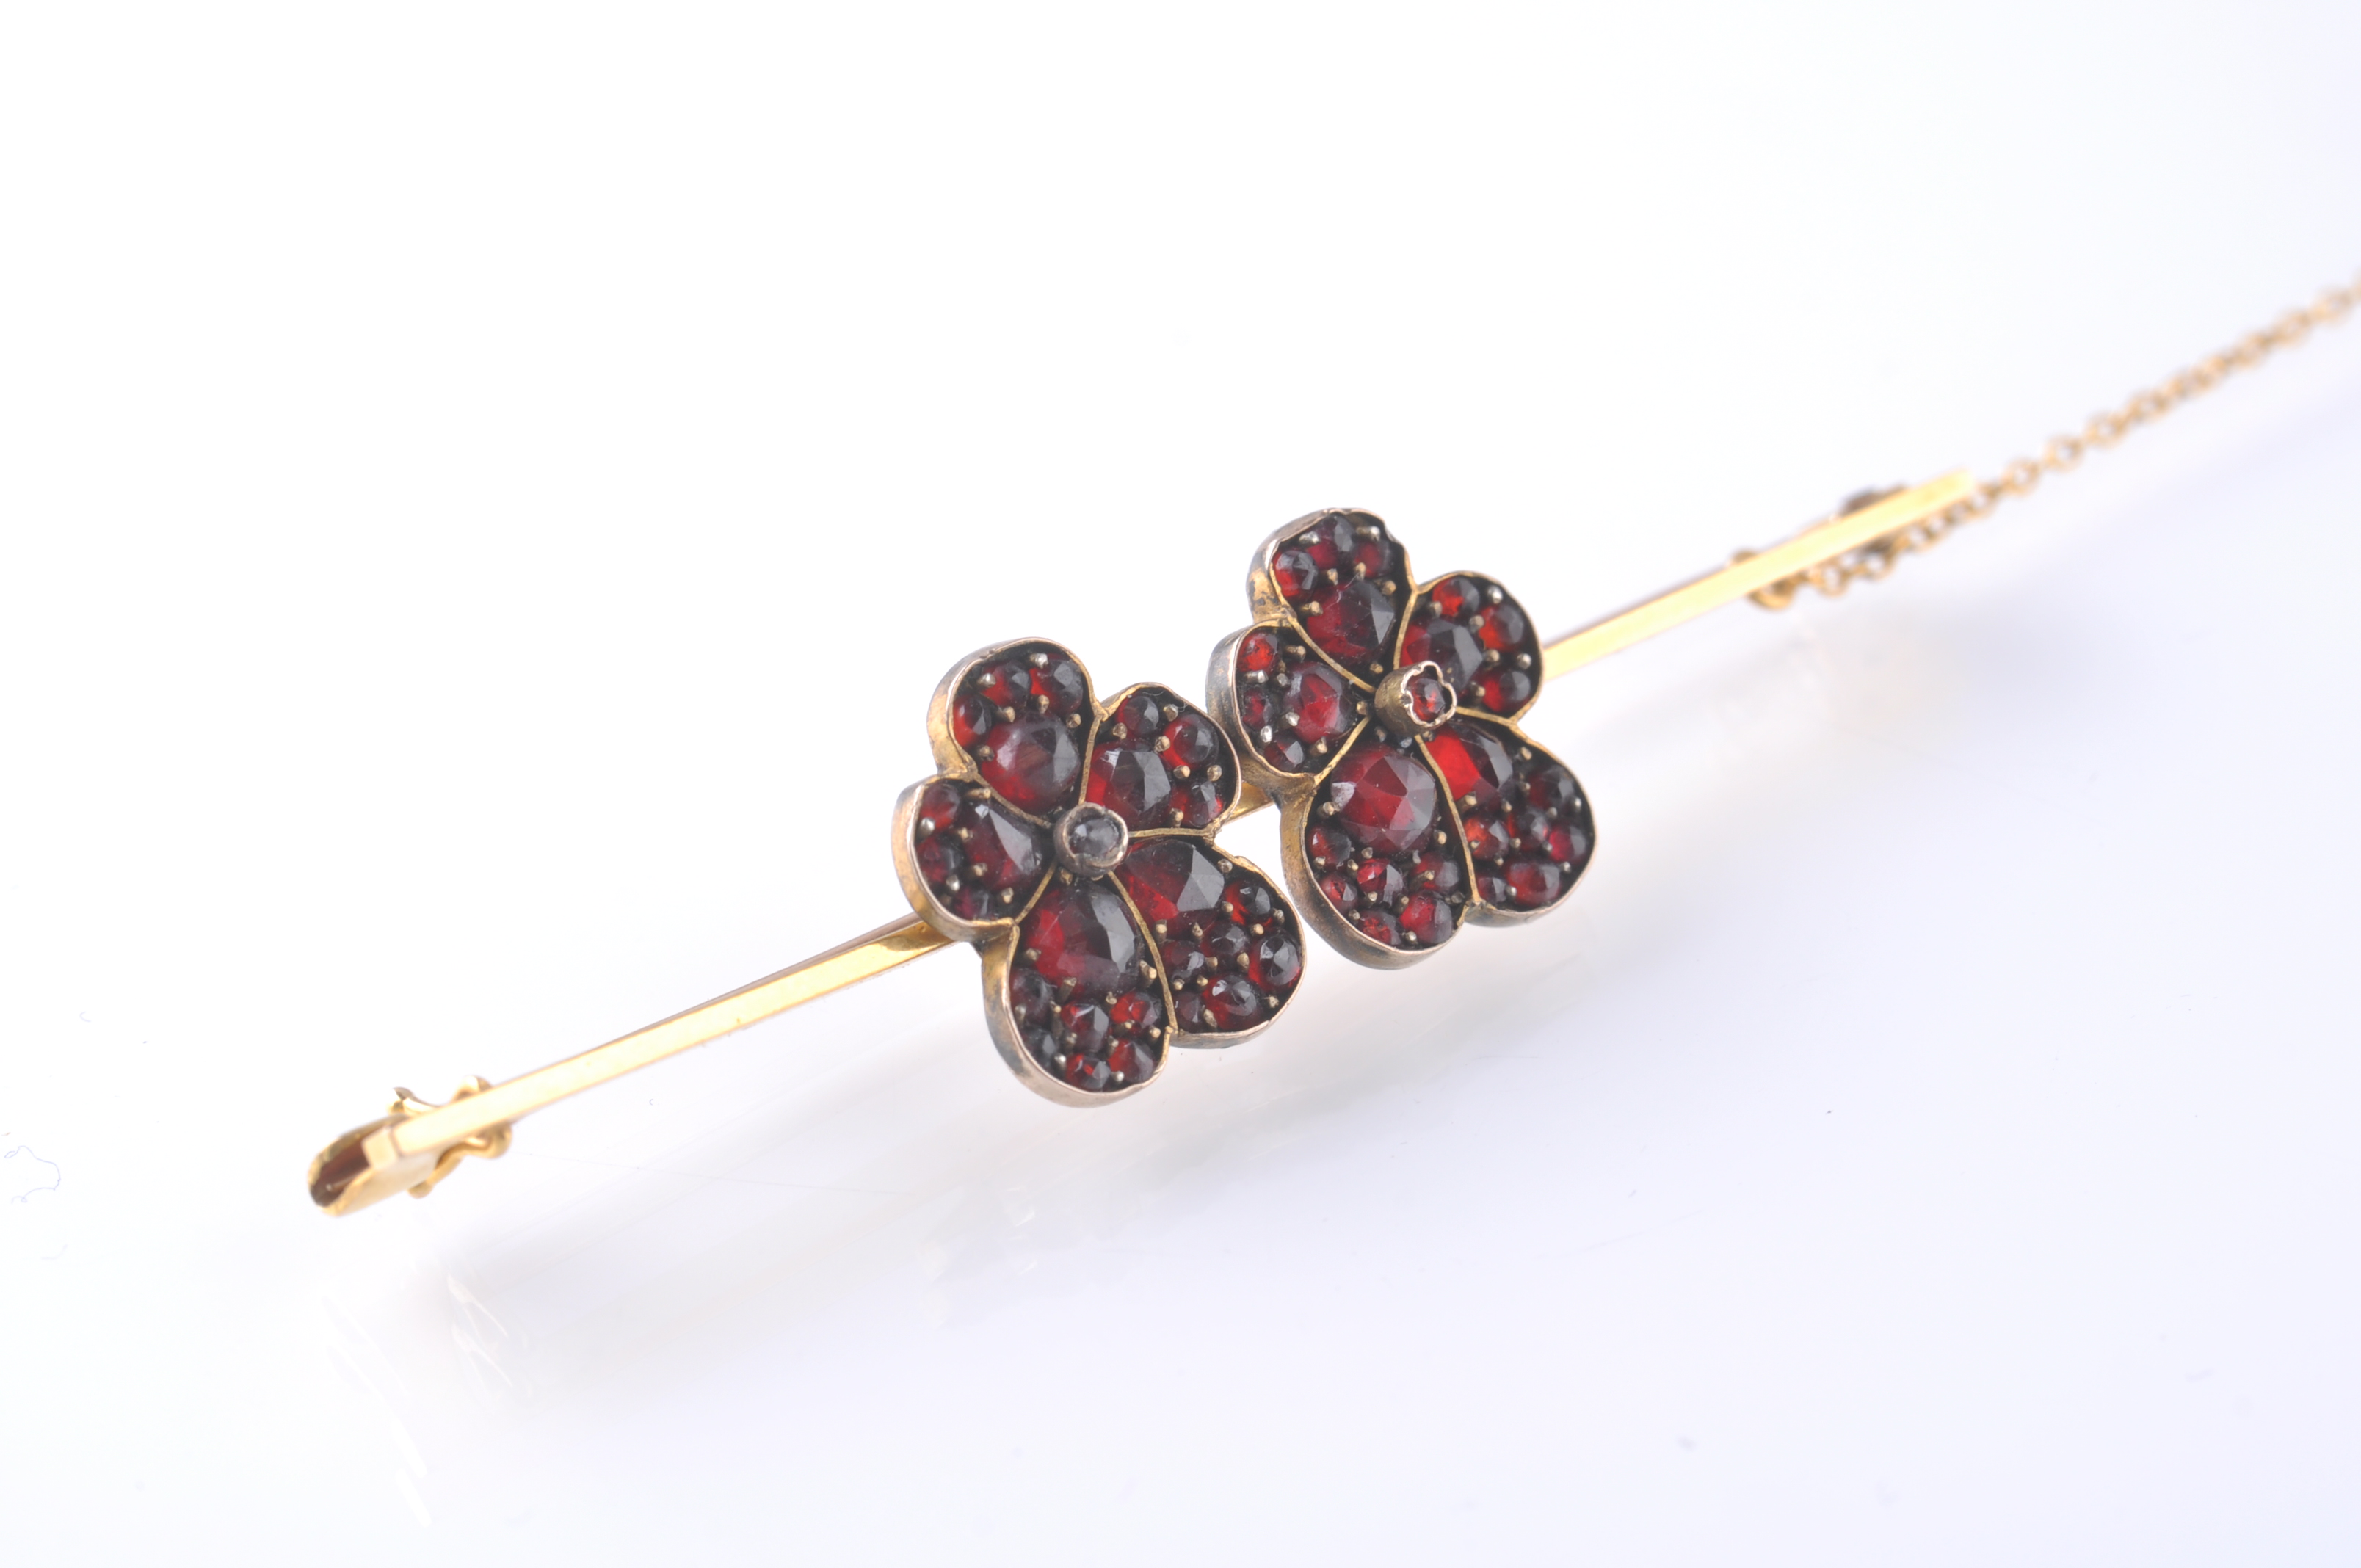 Lot 124 - LATE 19TH VICTORIAN 15CT GOLD BAR BROOCH WITH GARN